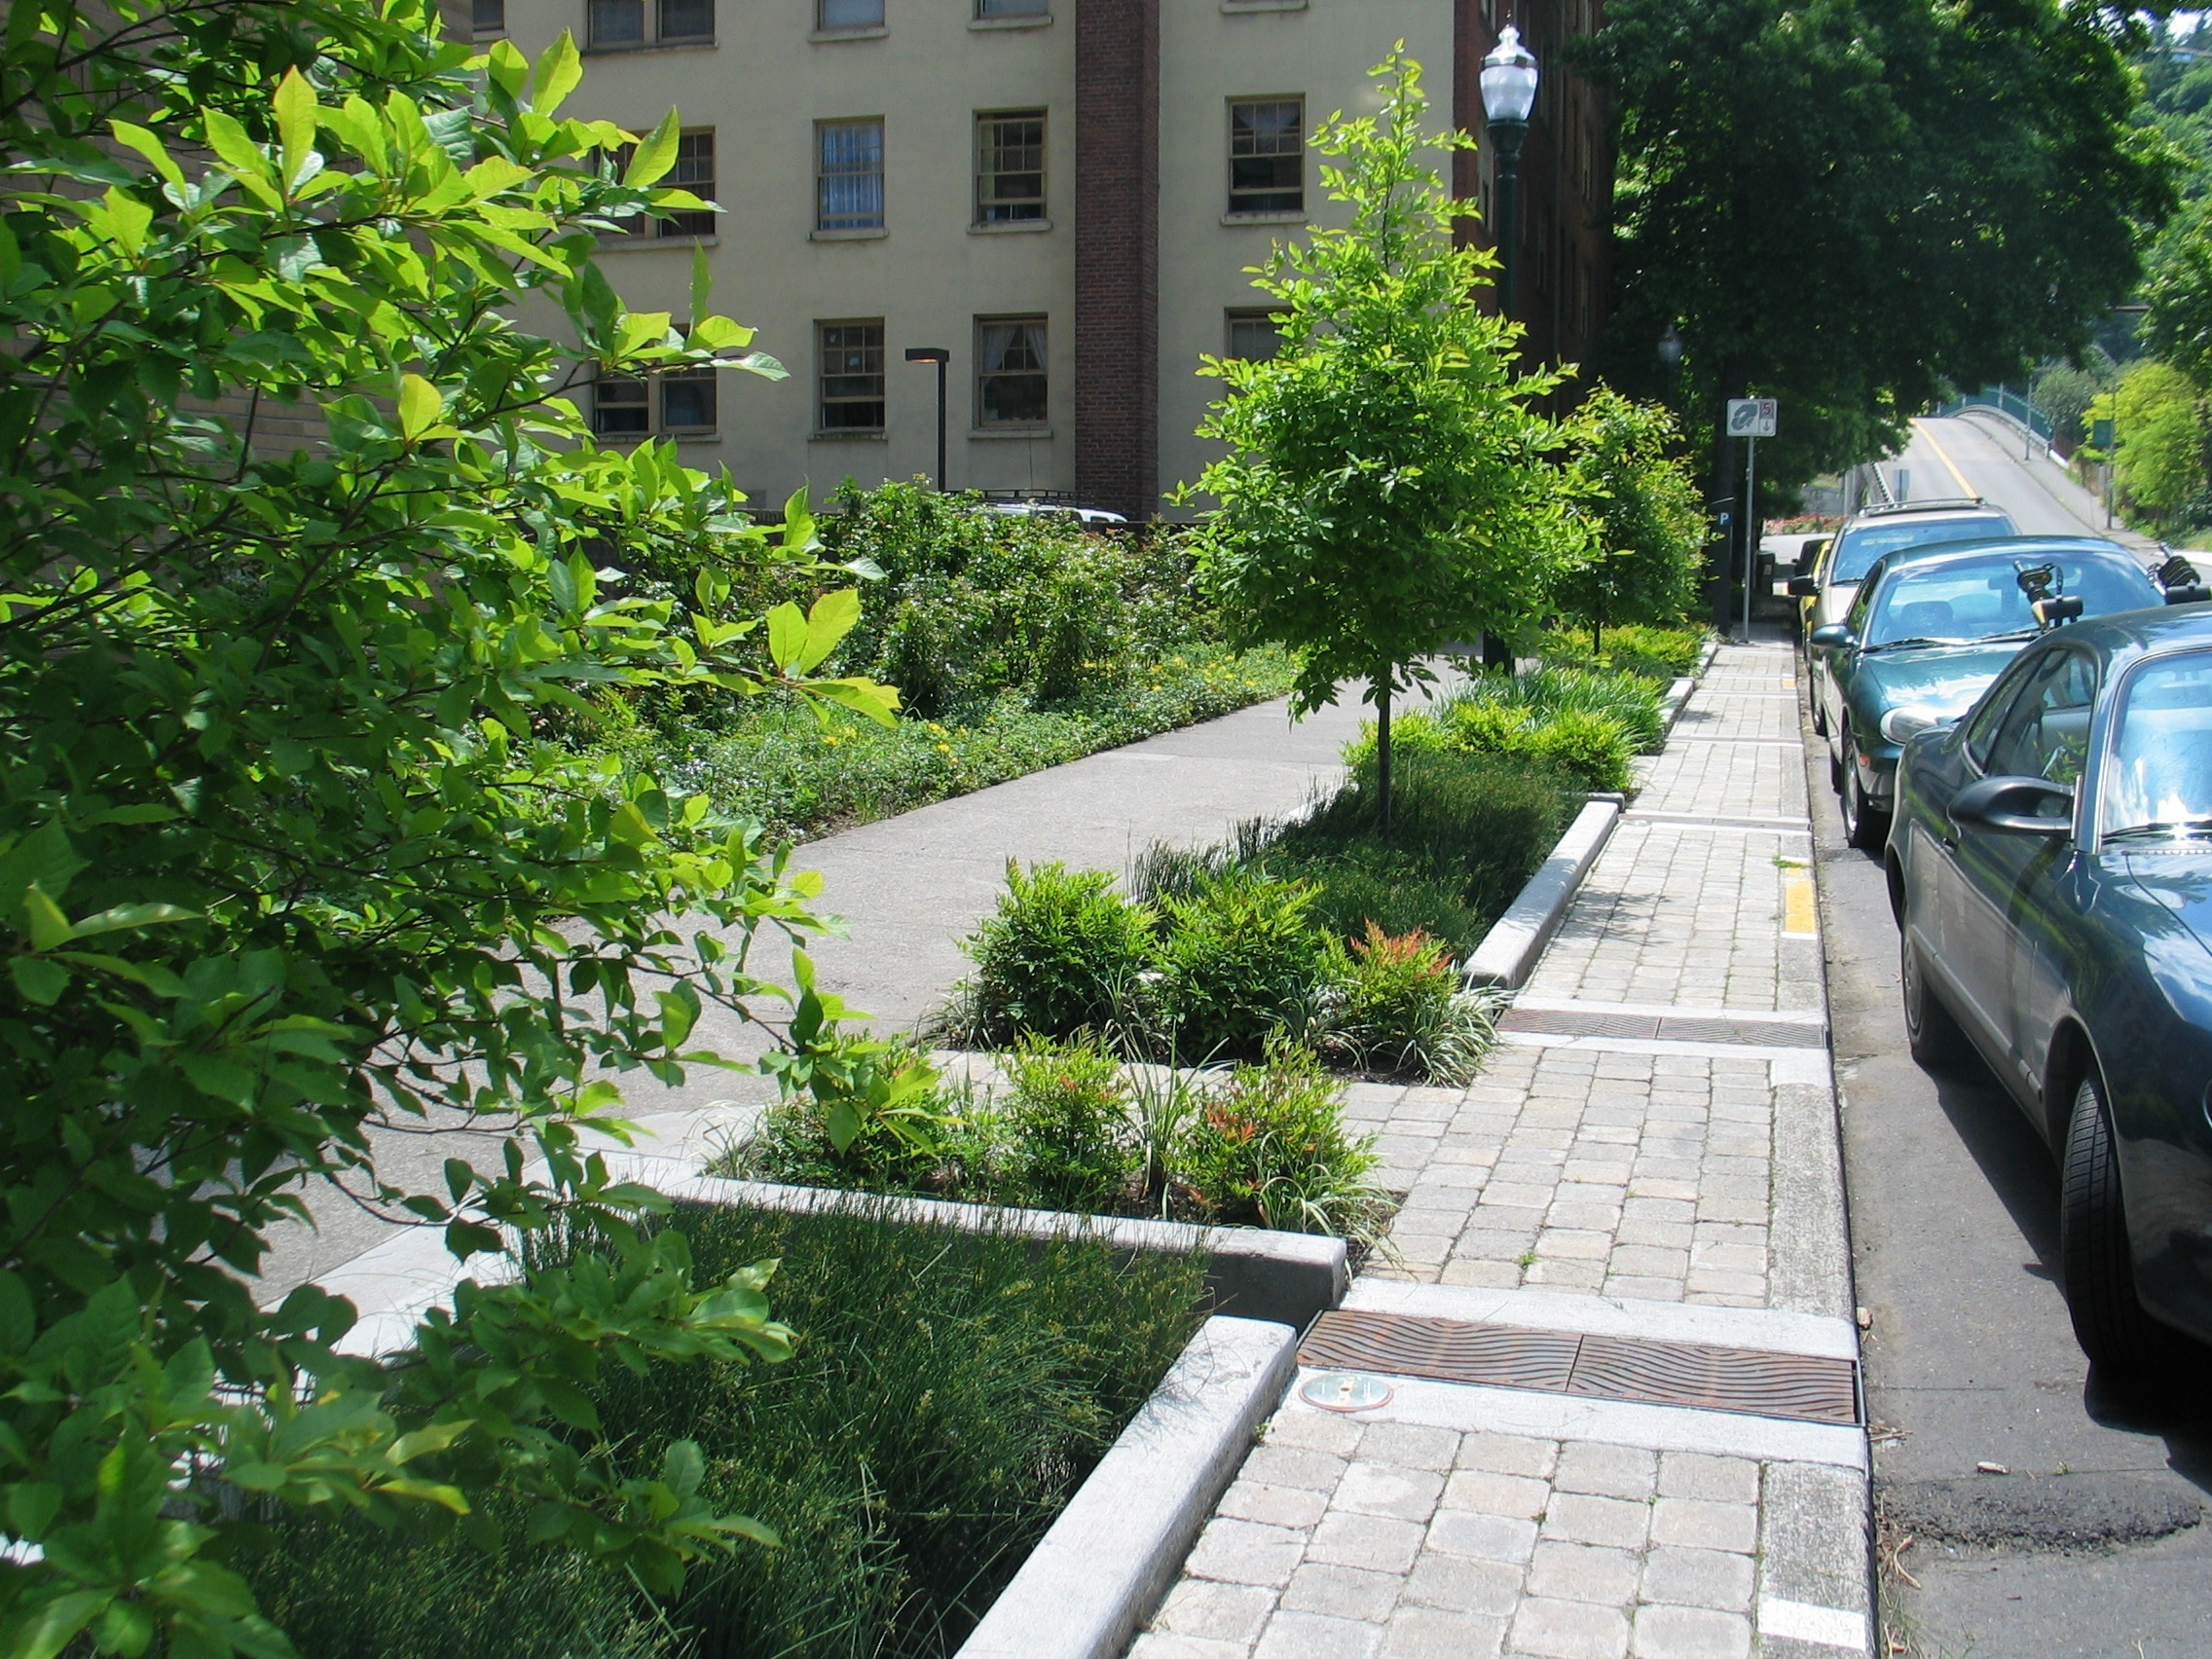 Street planters are used to absorb and hold storm water, keeping it from overrunning combined sewer systems.